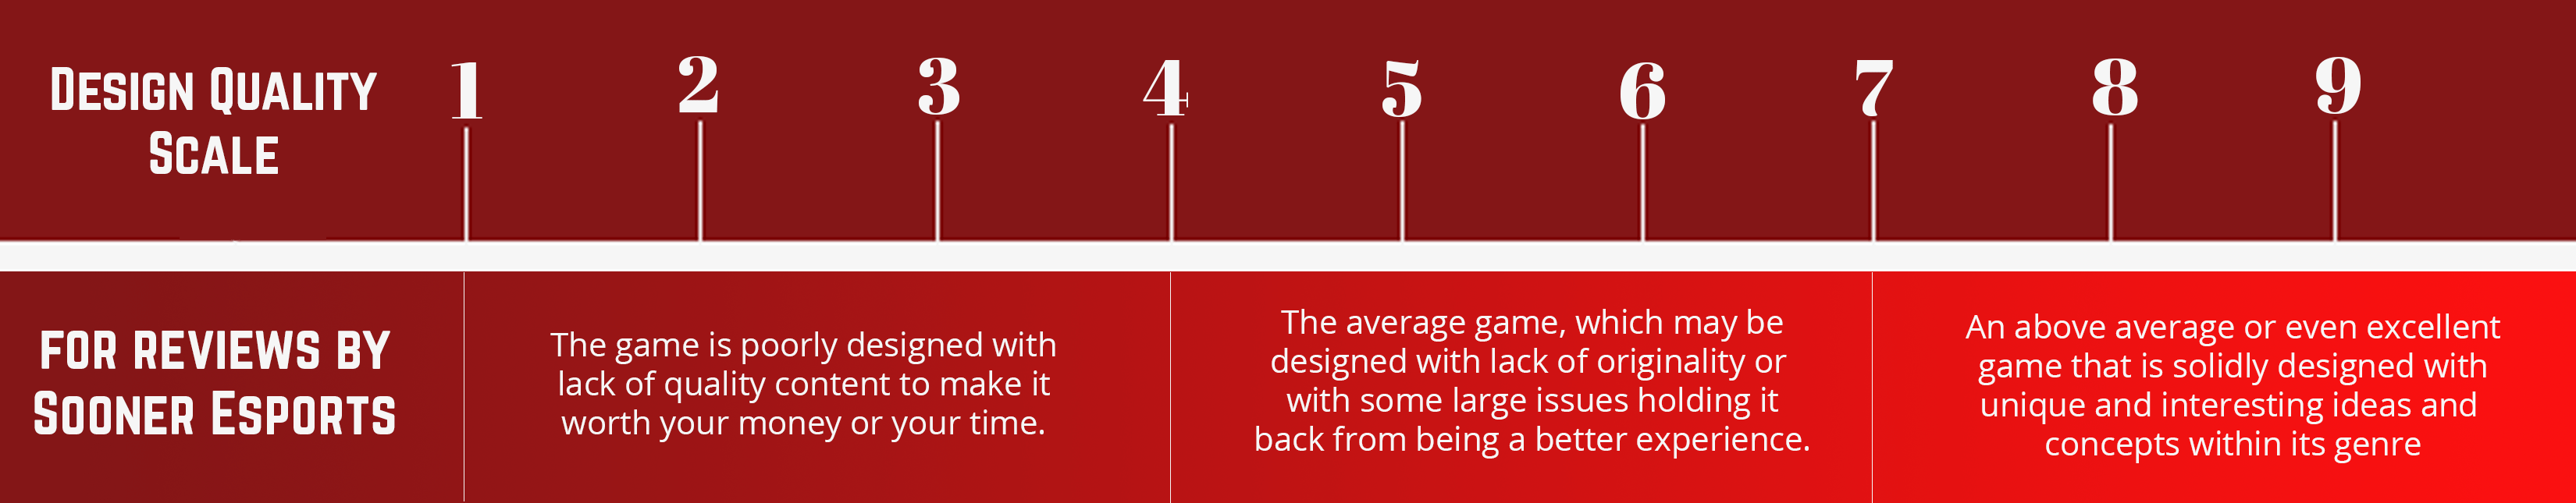 The video game rating scale for sooner esports